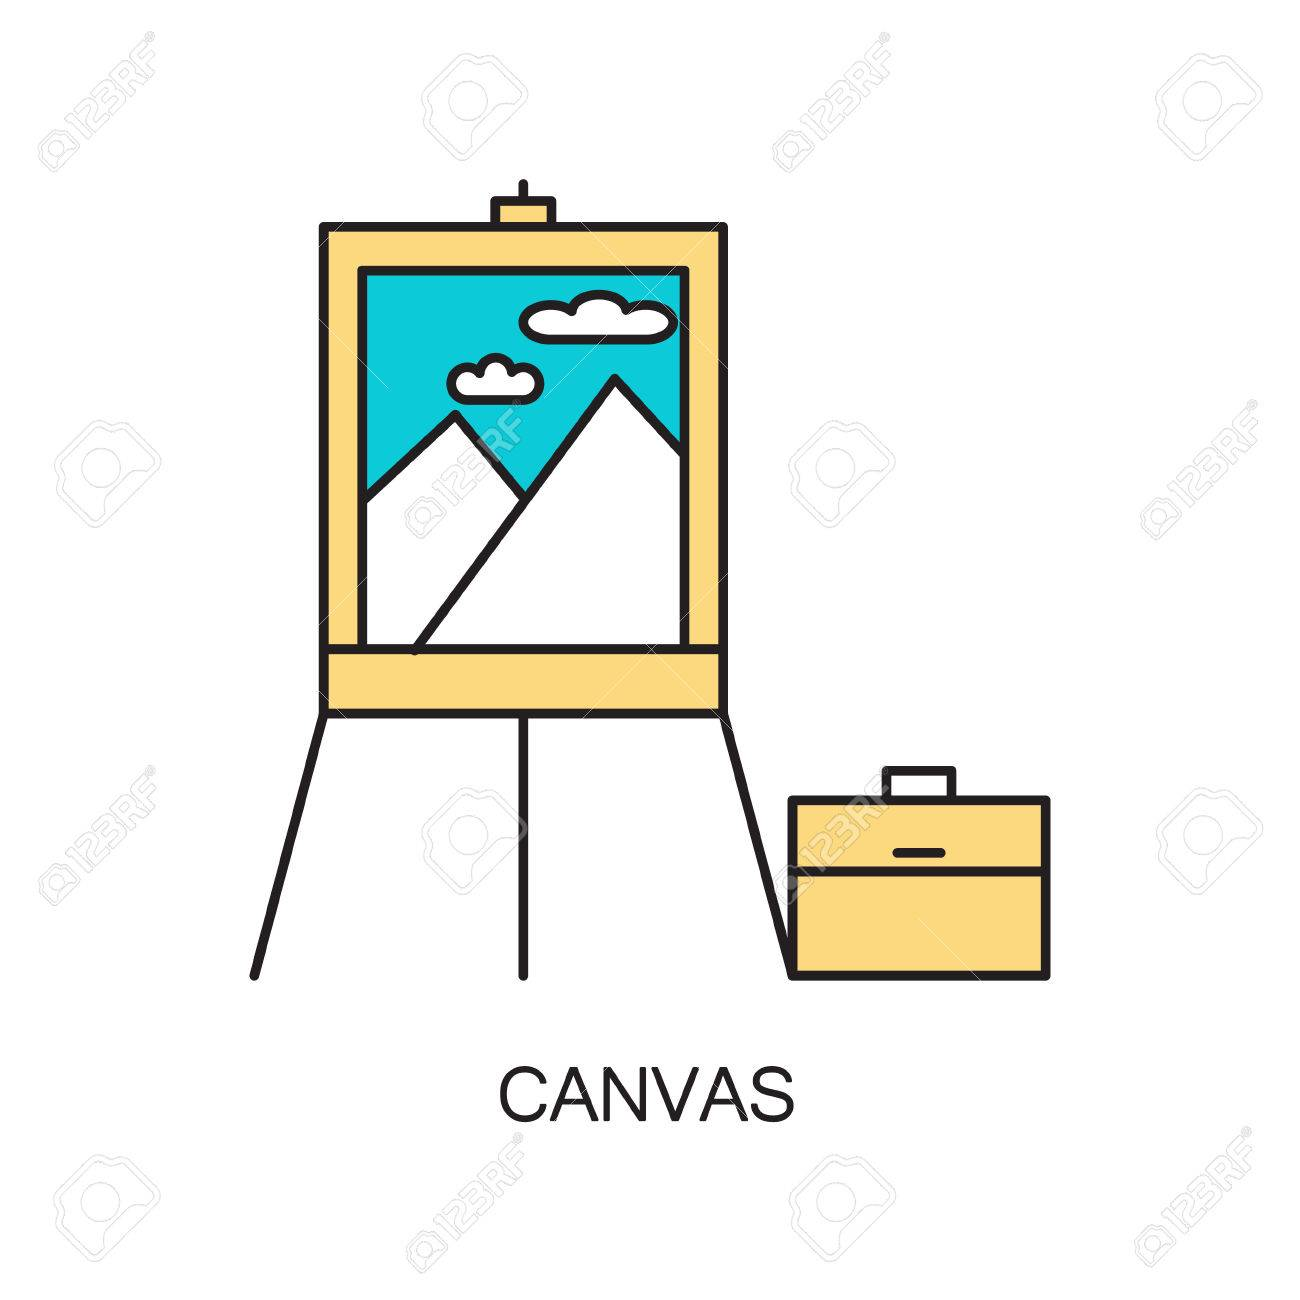 Canvas line icon single high quality outline interior or single high quality outline interior or technological pictogram for composition of childrens ccuart Images